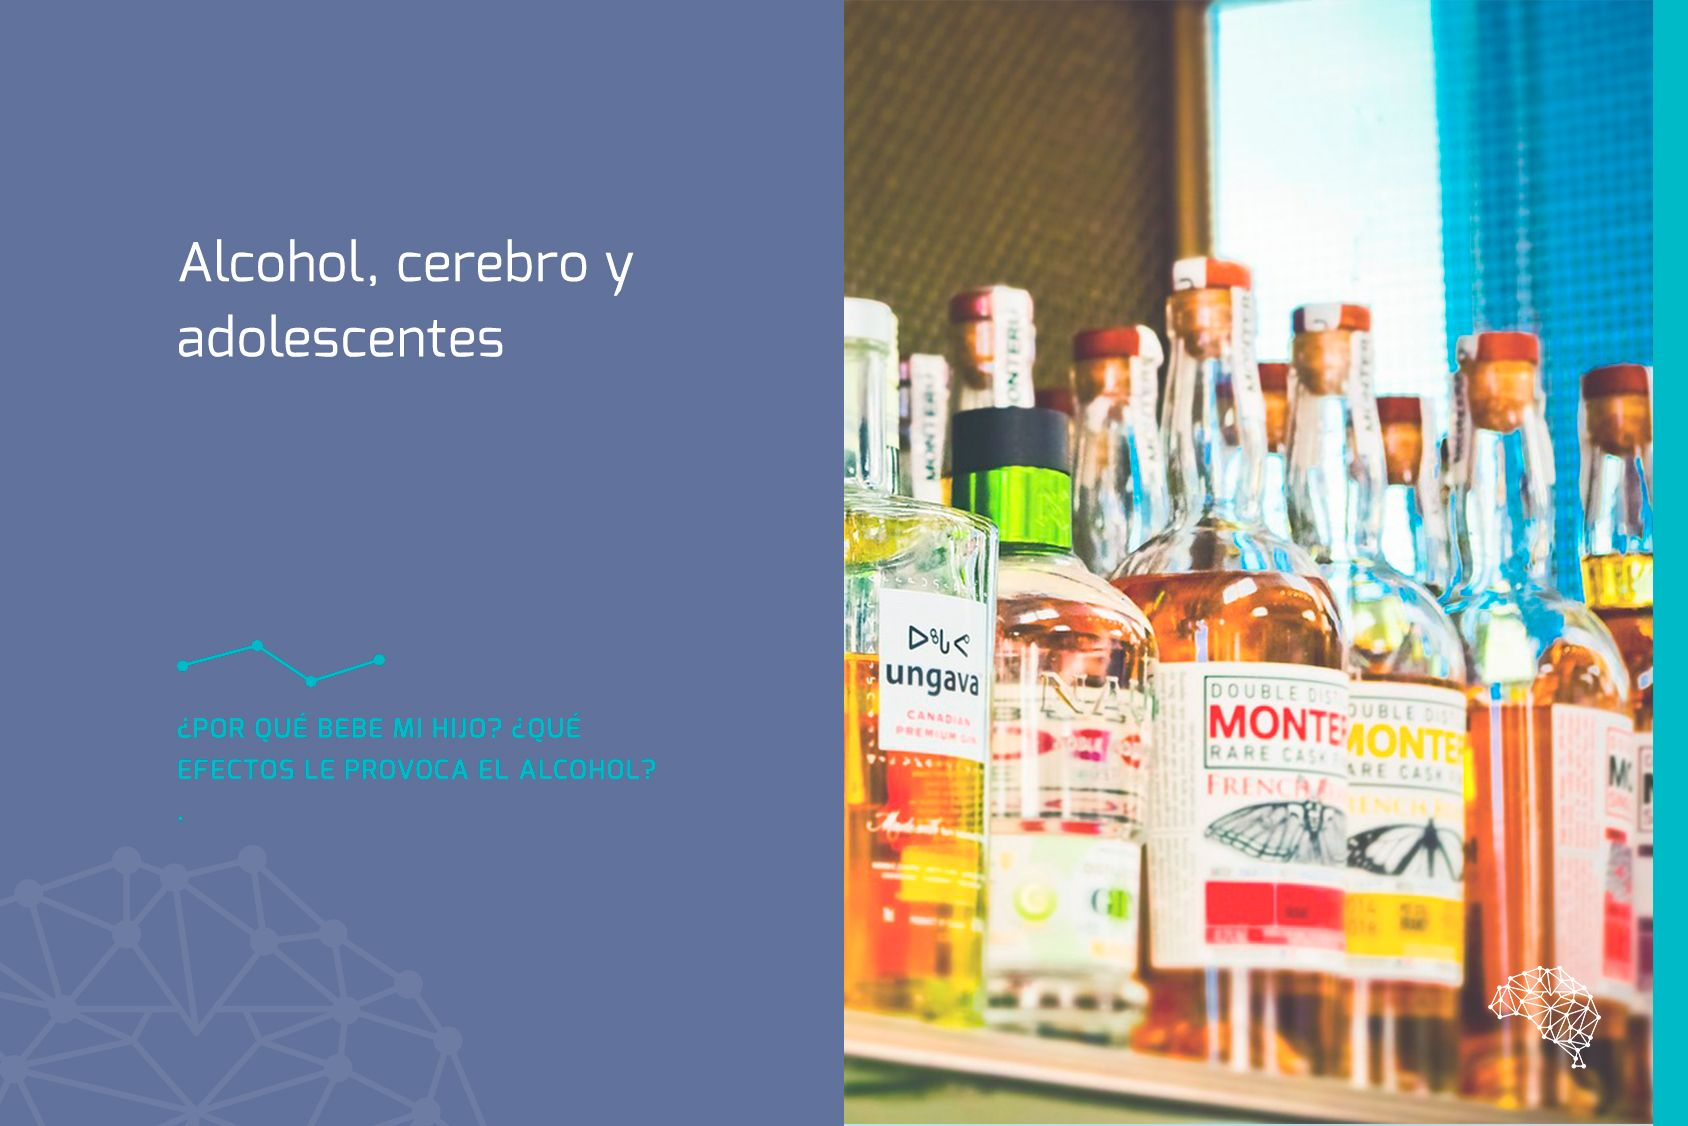 Alcohol, cerebro y adolescentes